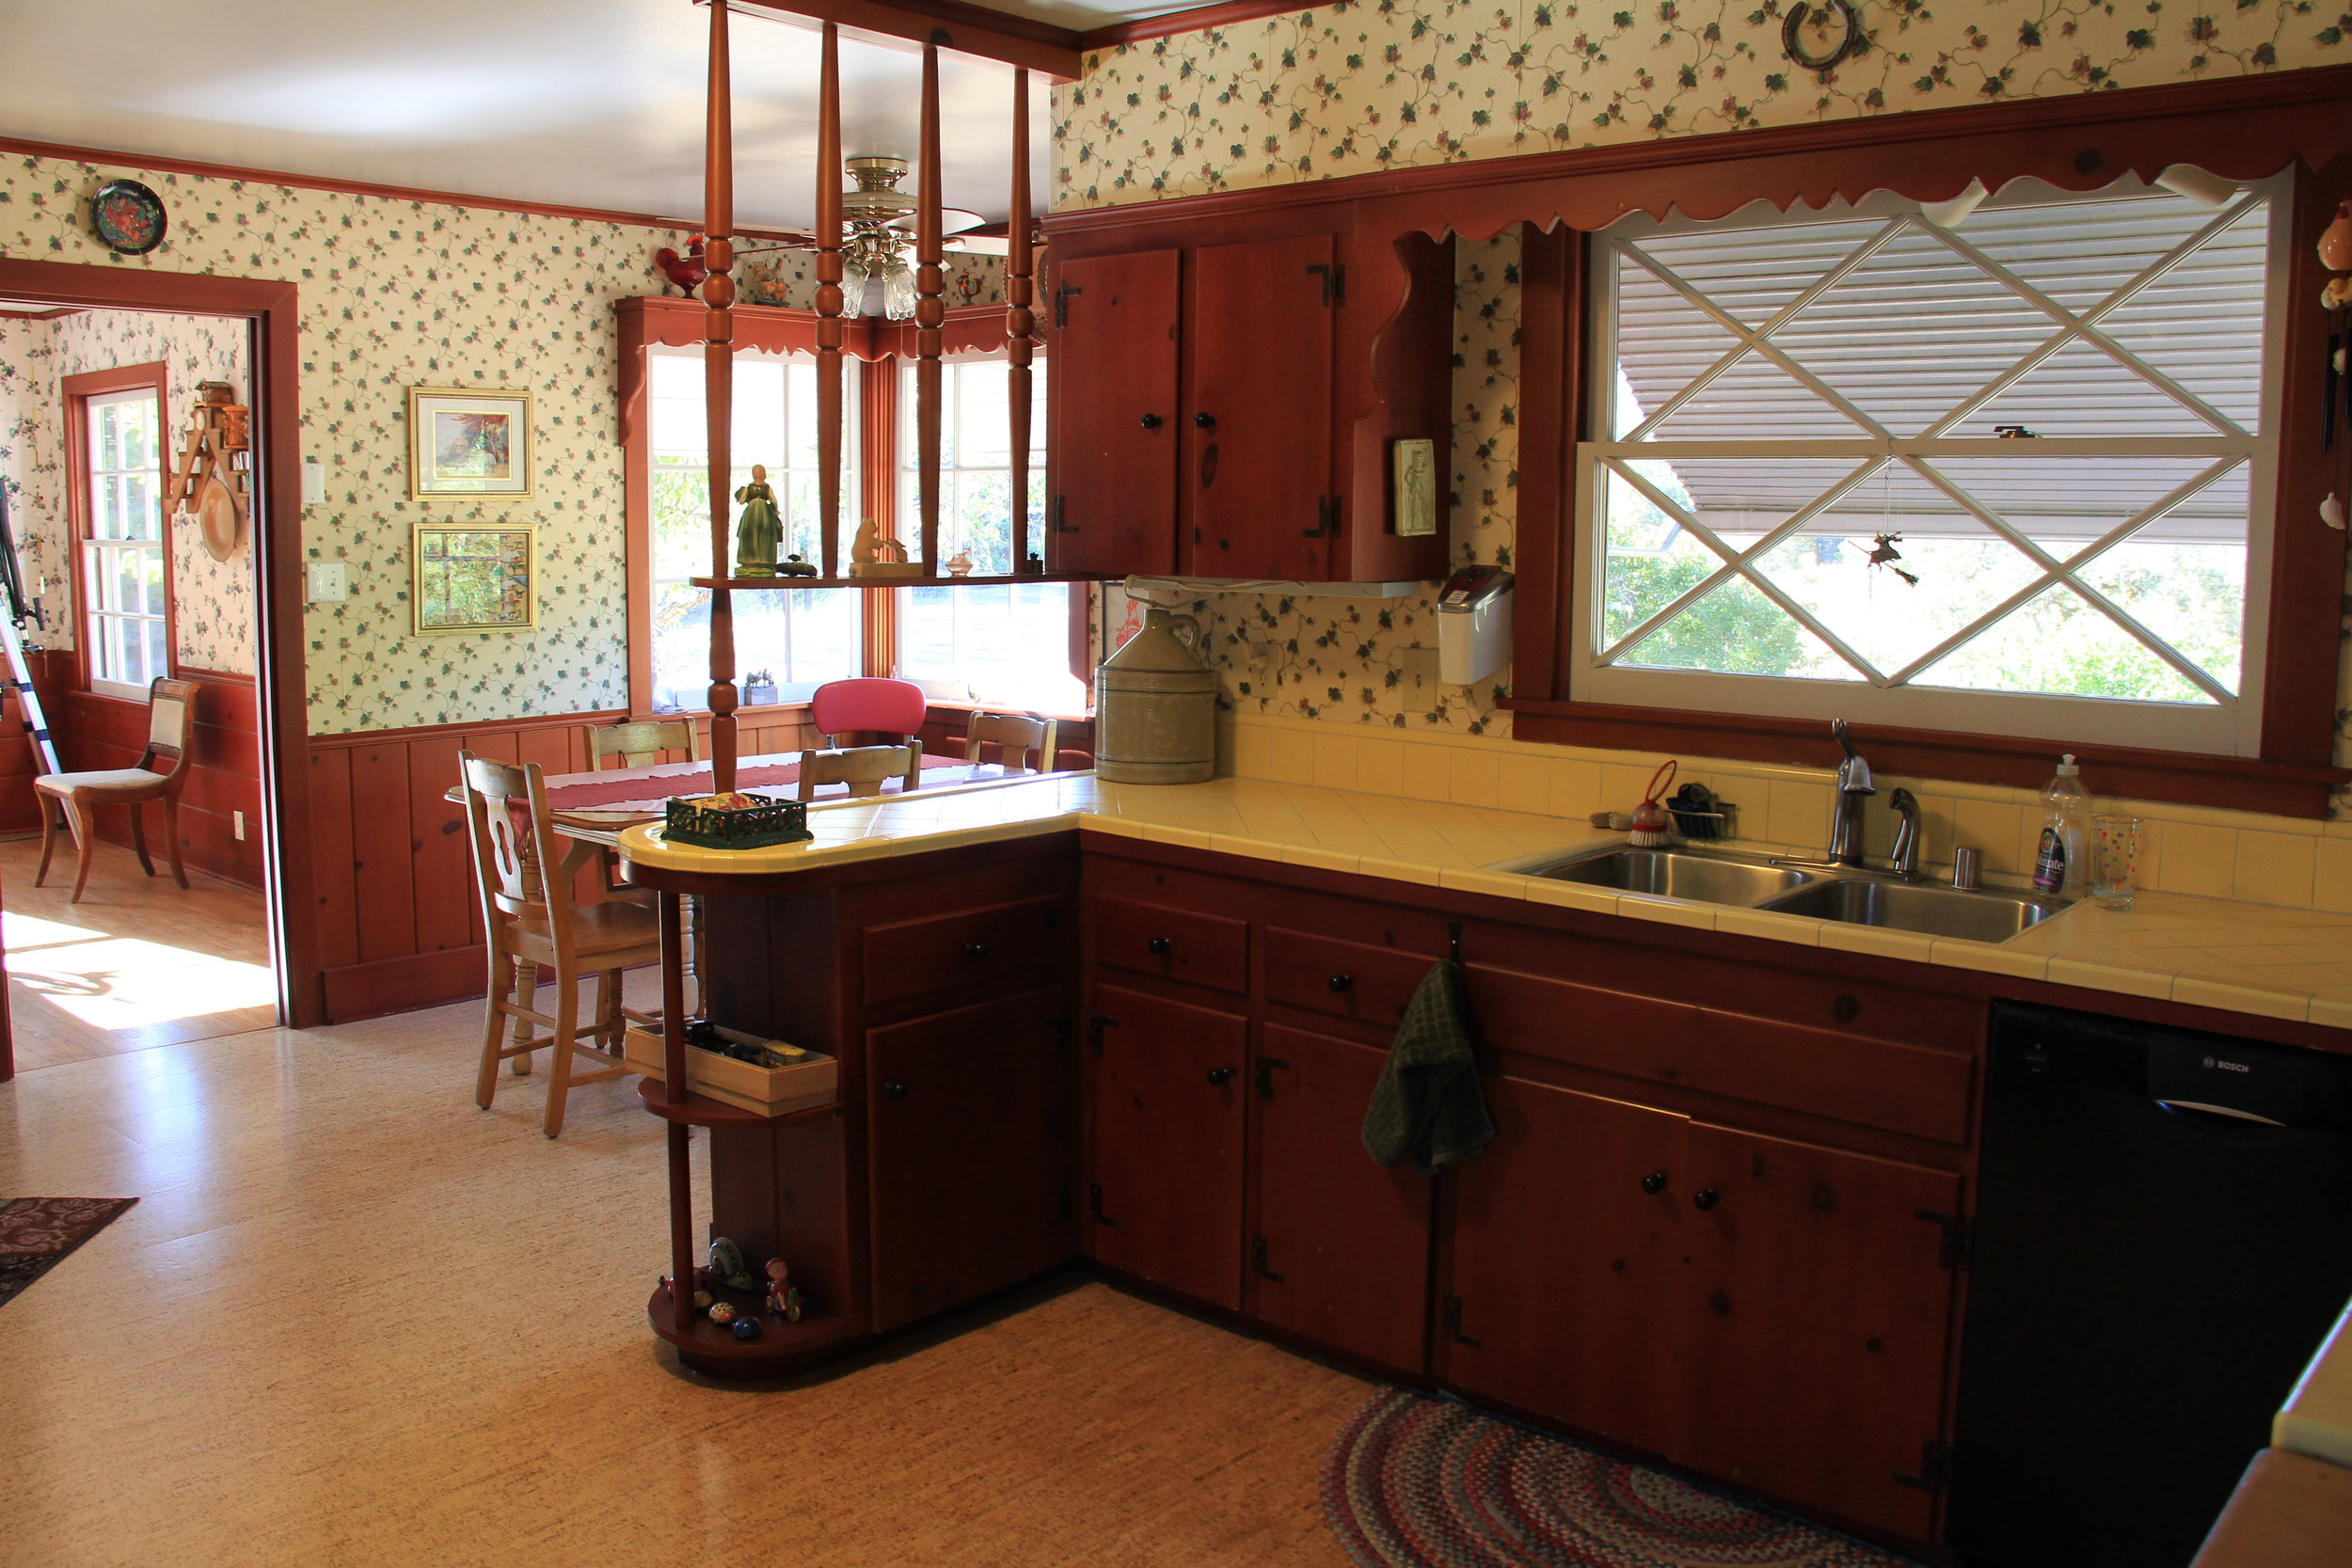 Ranch House kitchen combines retro style with modern convenience